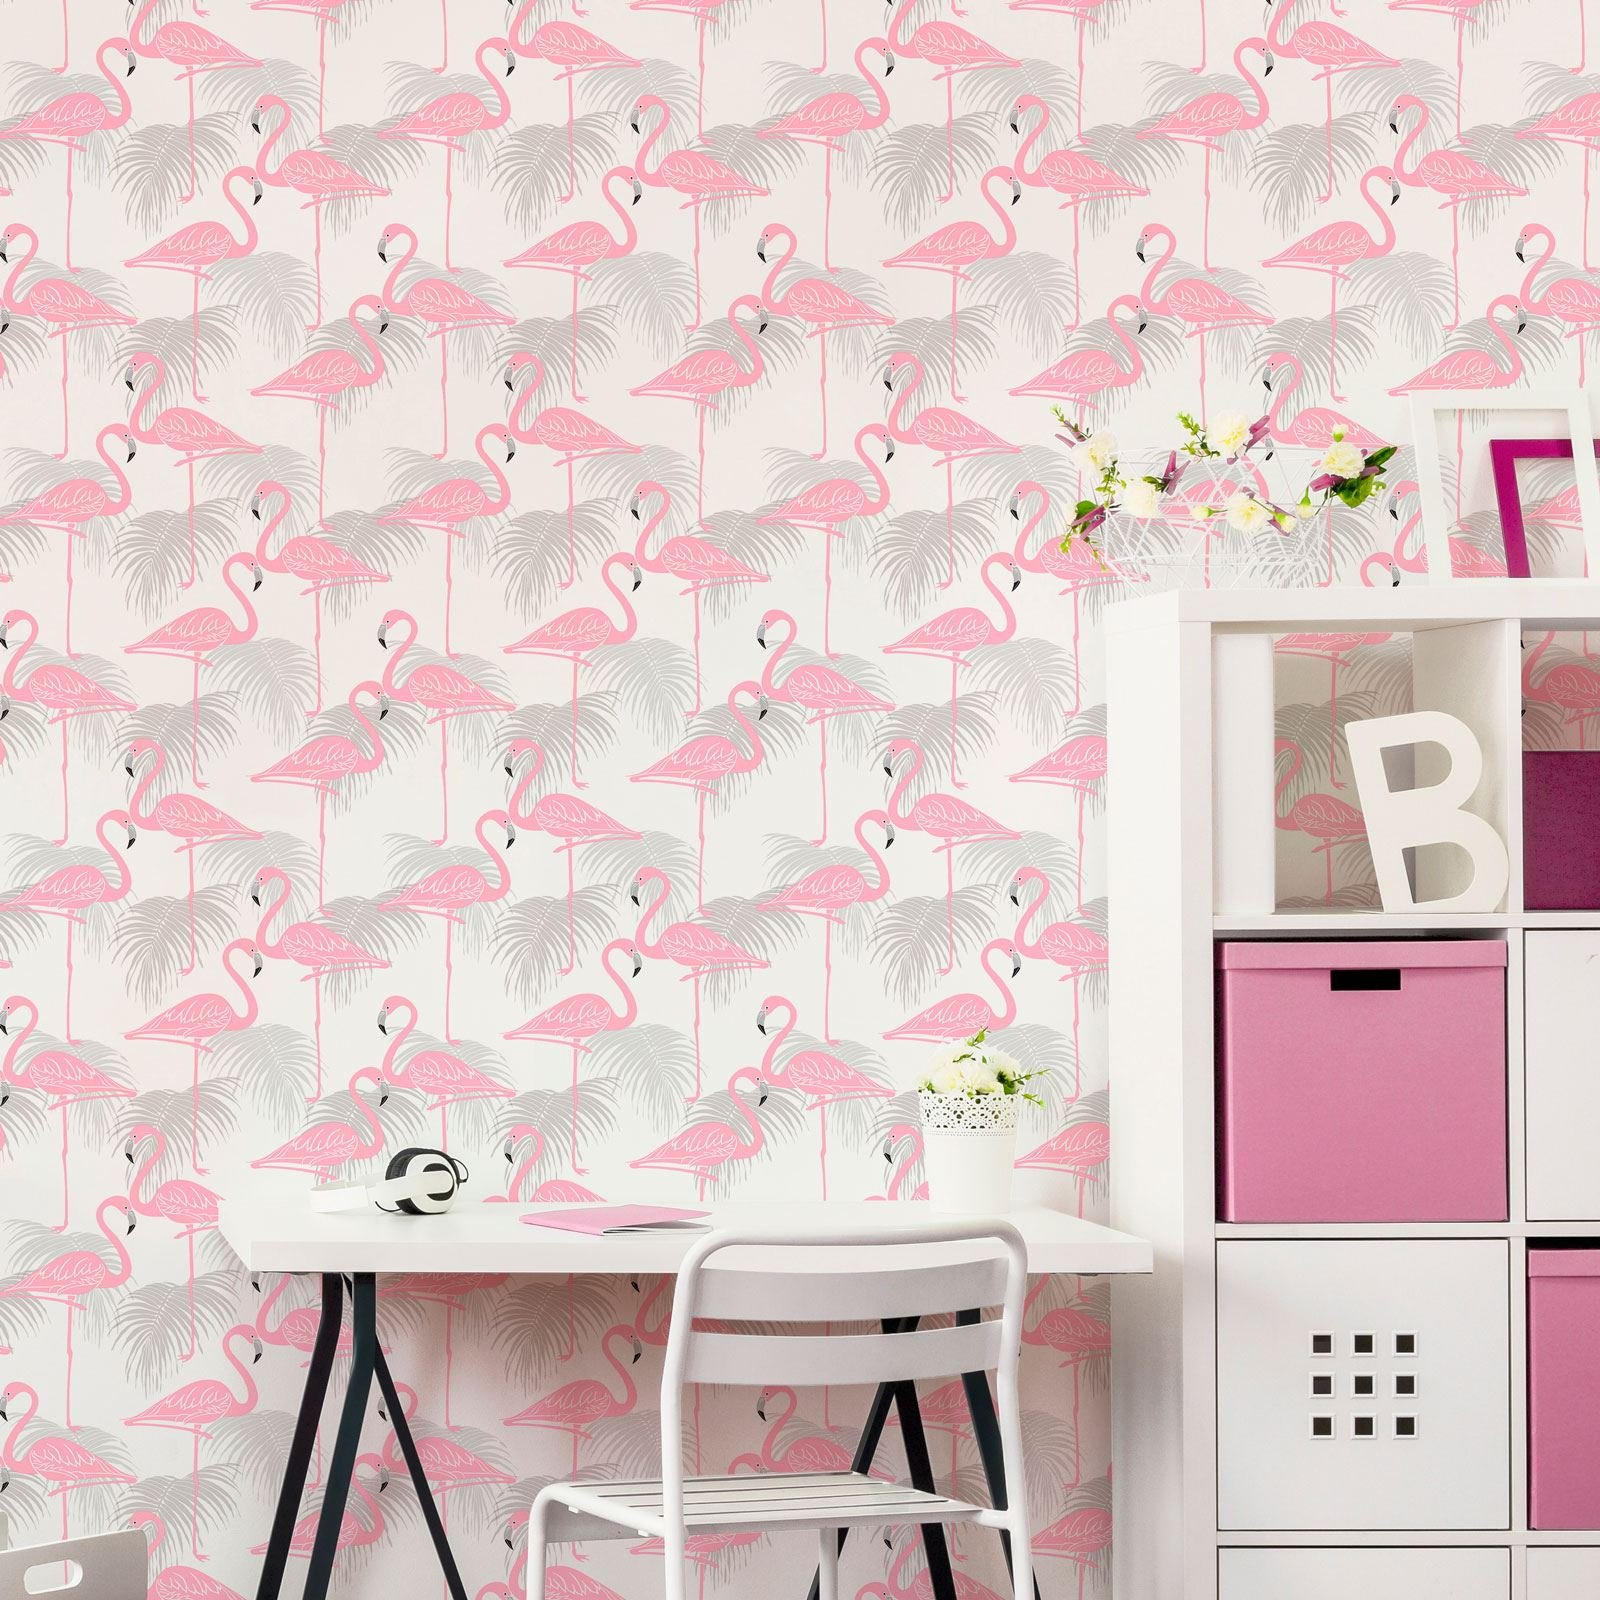 Flamingo and Palm Leaves Wallpaper - Pink and Grey - Fine Decor FD42215